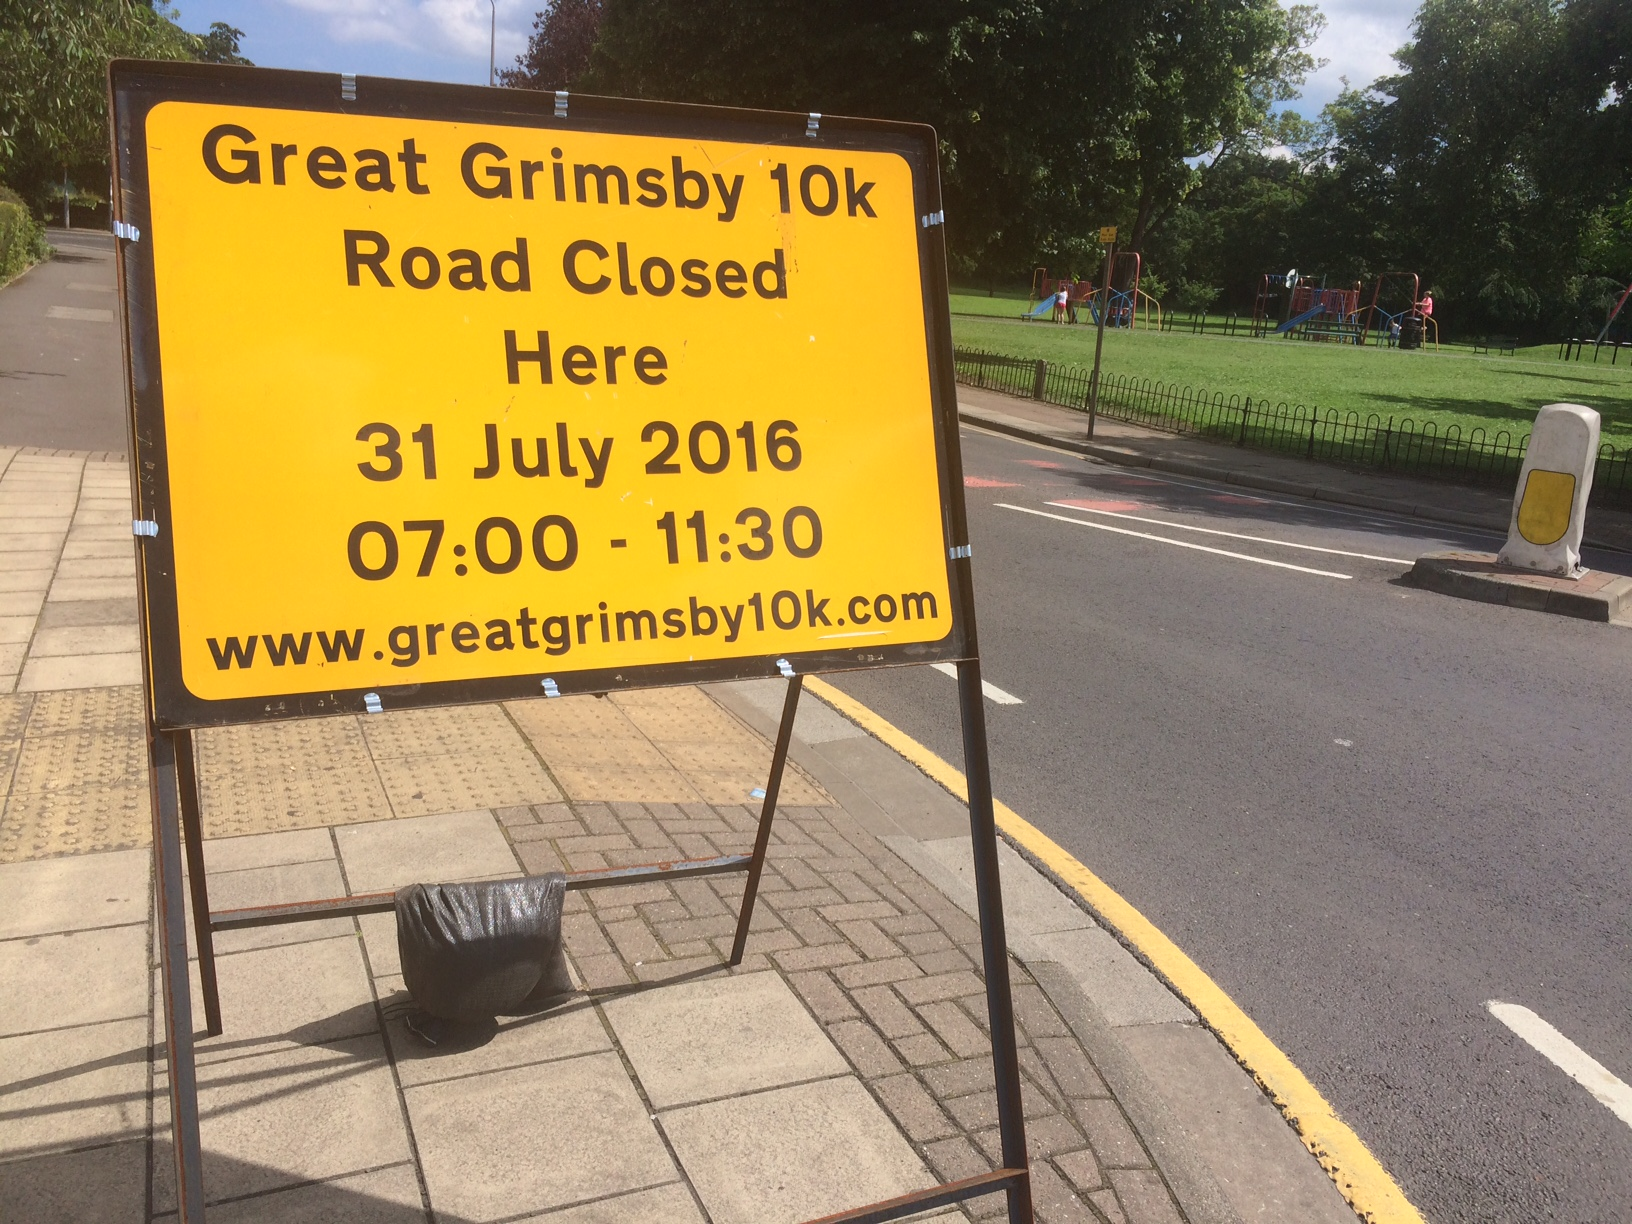 Road Closure Information For The Dong Energy Great Grimsby